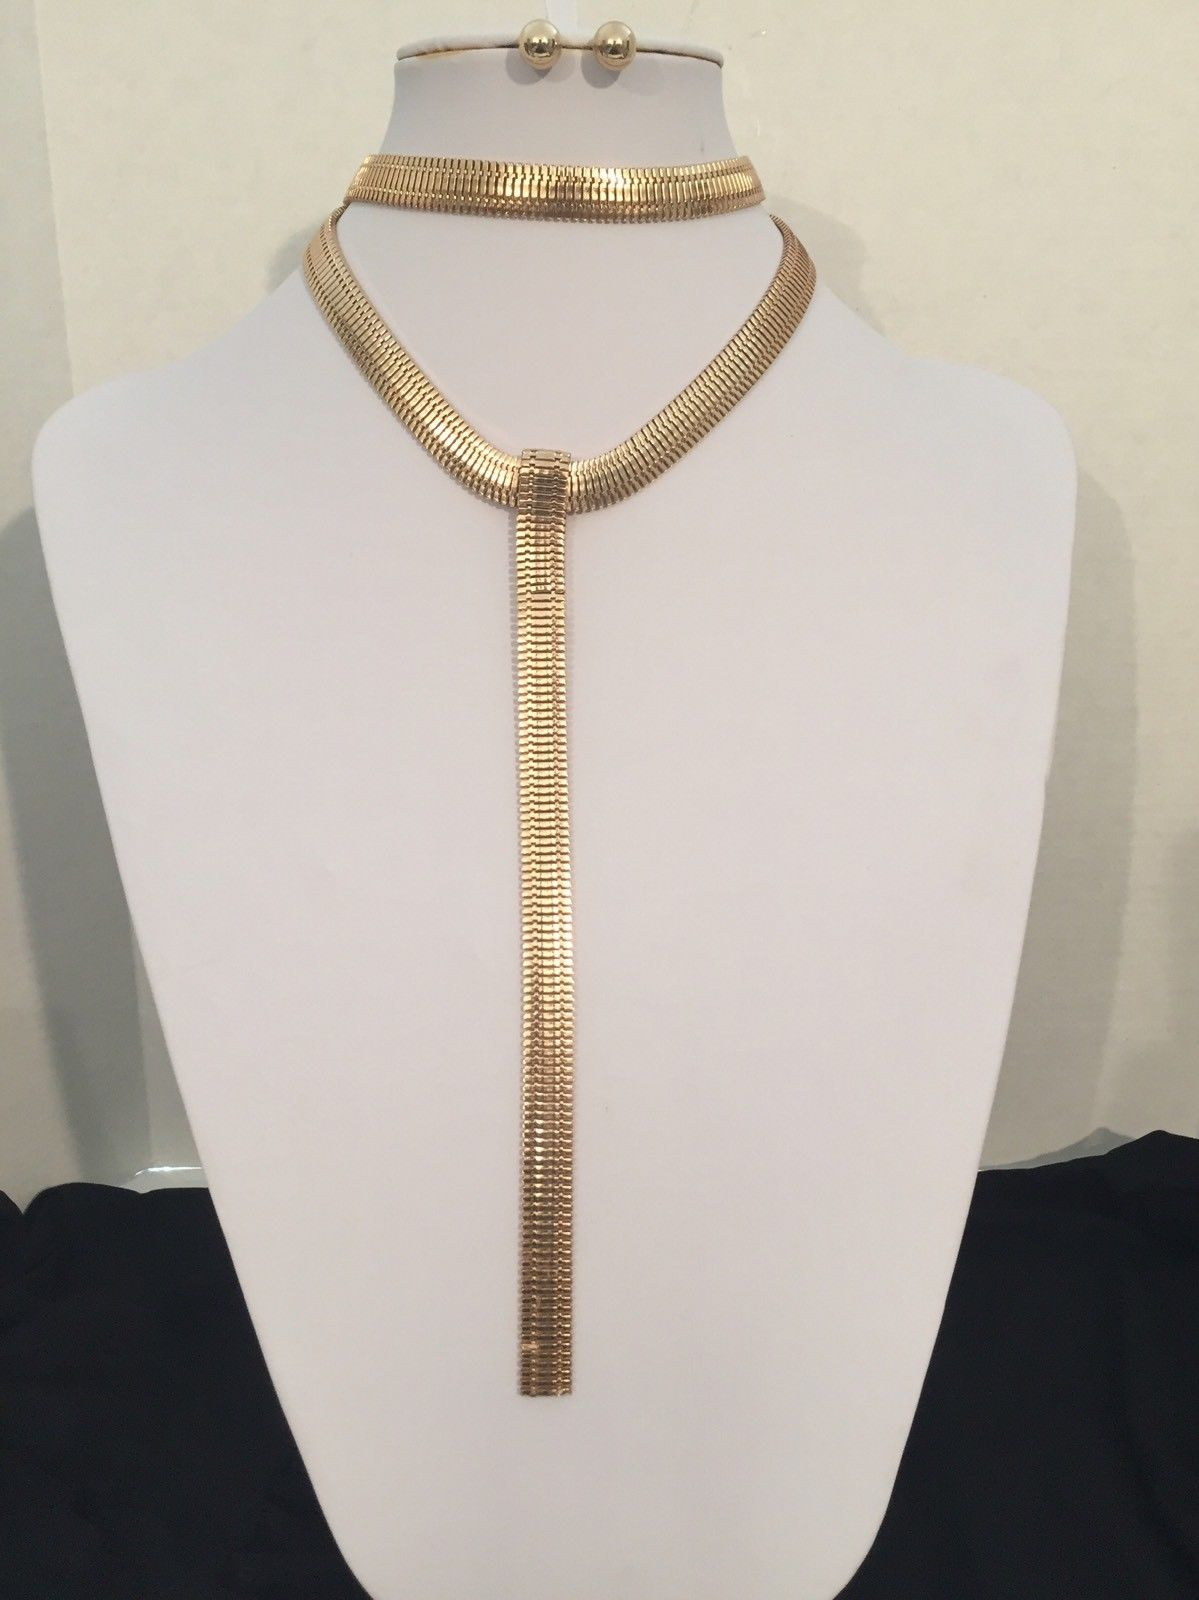 "12"" gold snake tie choker layered collar necklace .50"" earrings 12"" drop"